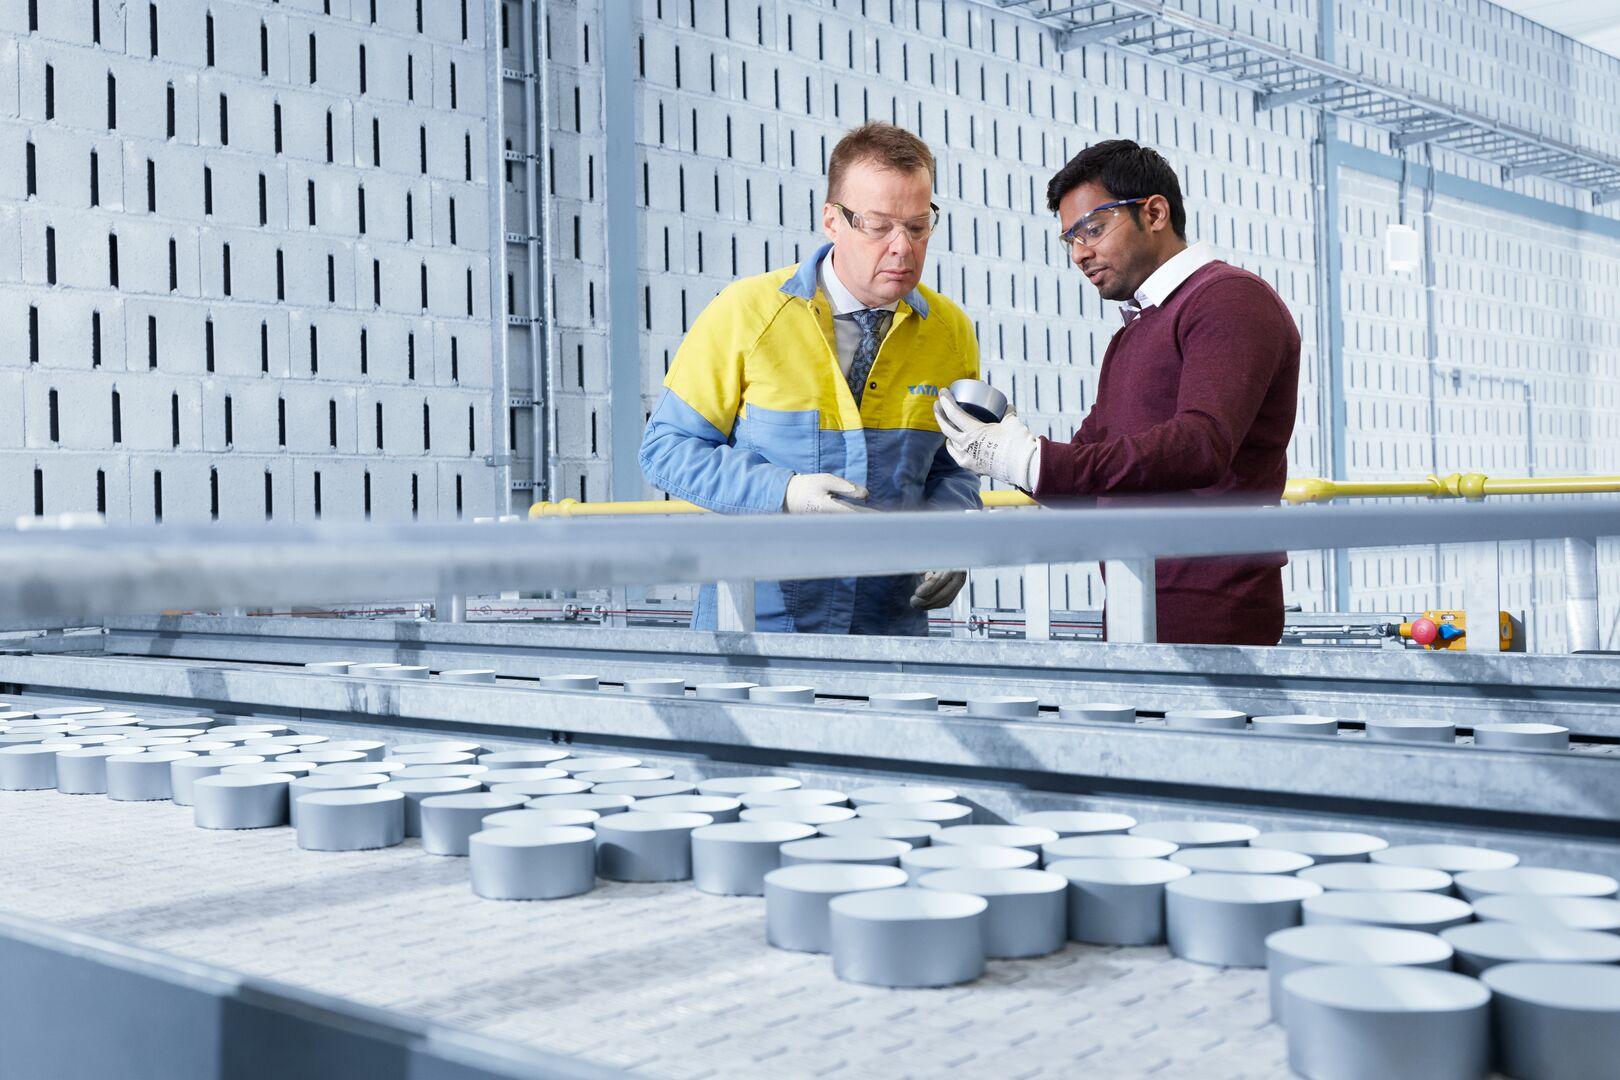 Tata Steel employees examining packaging can products at a testing facility